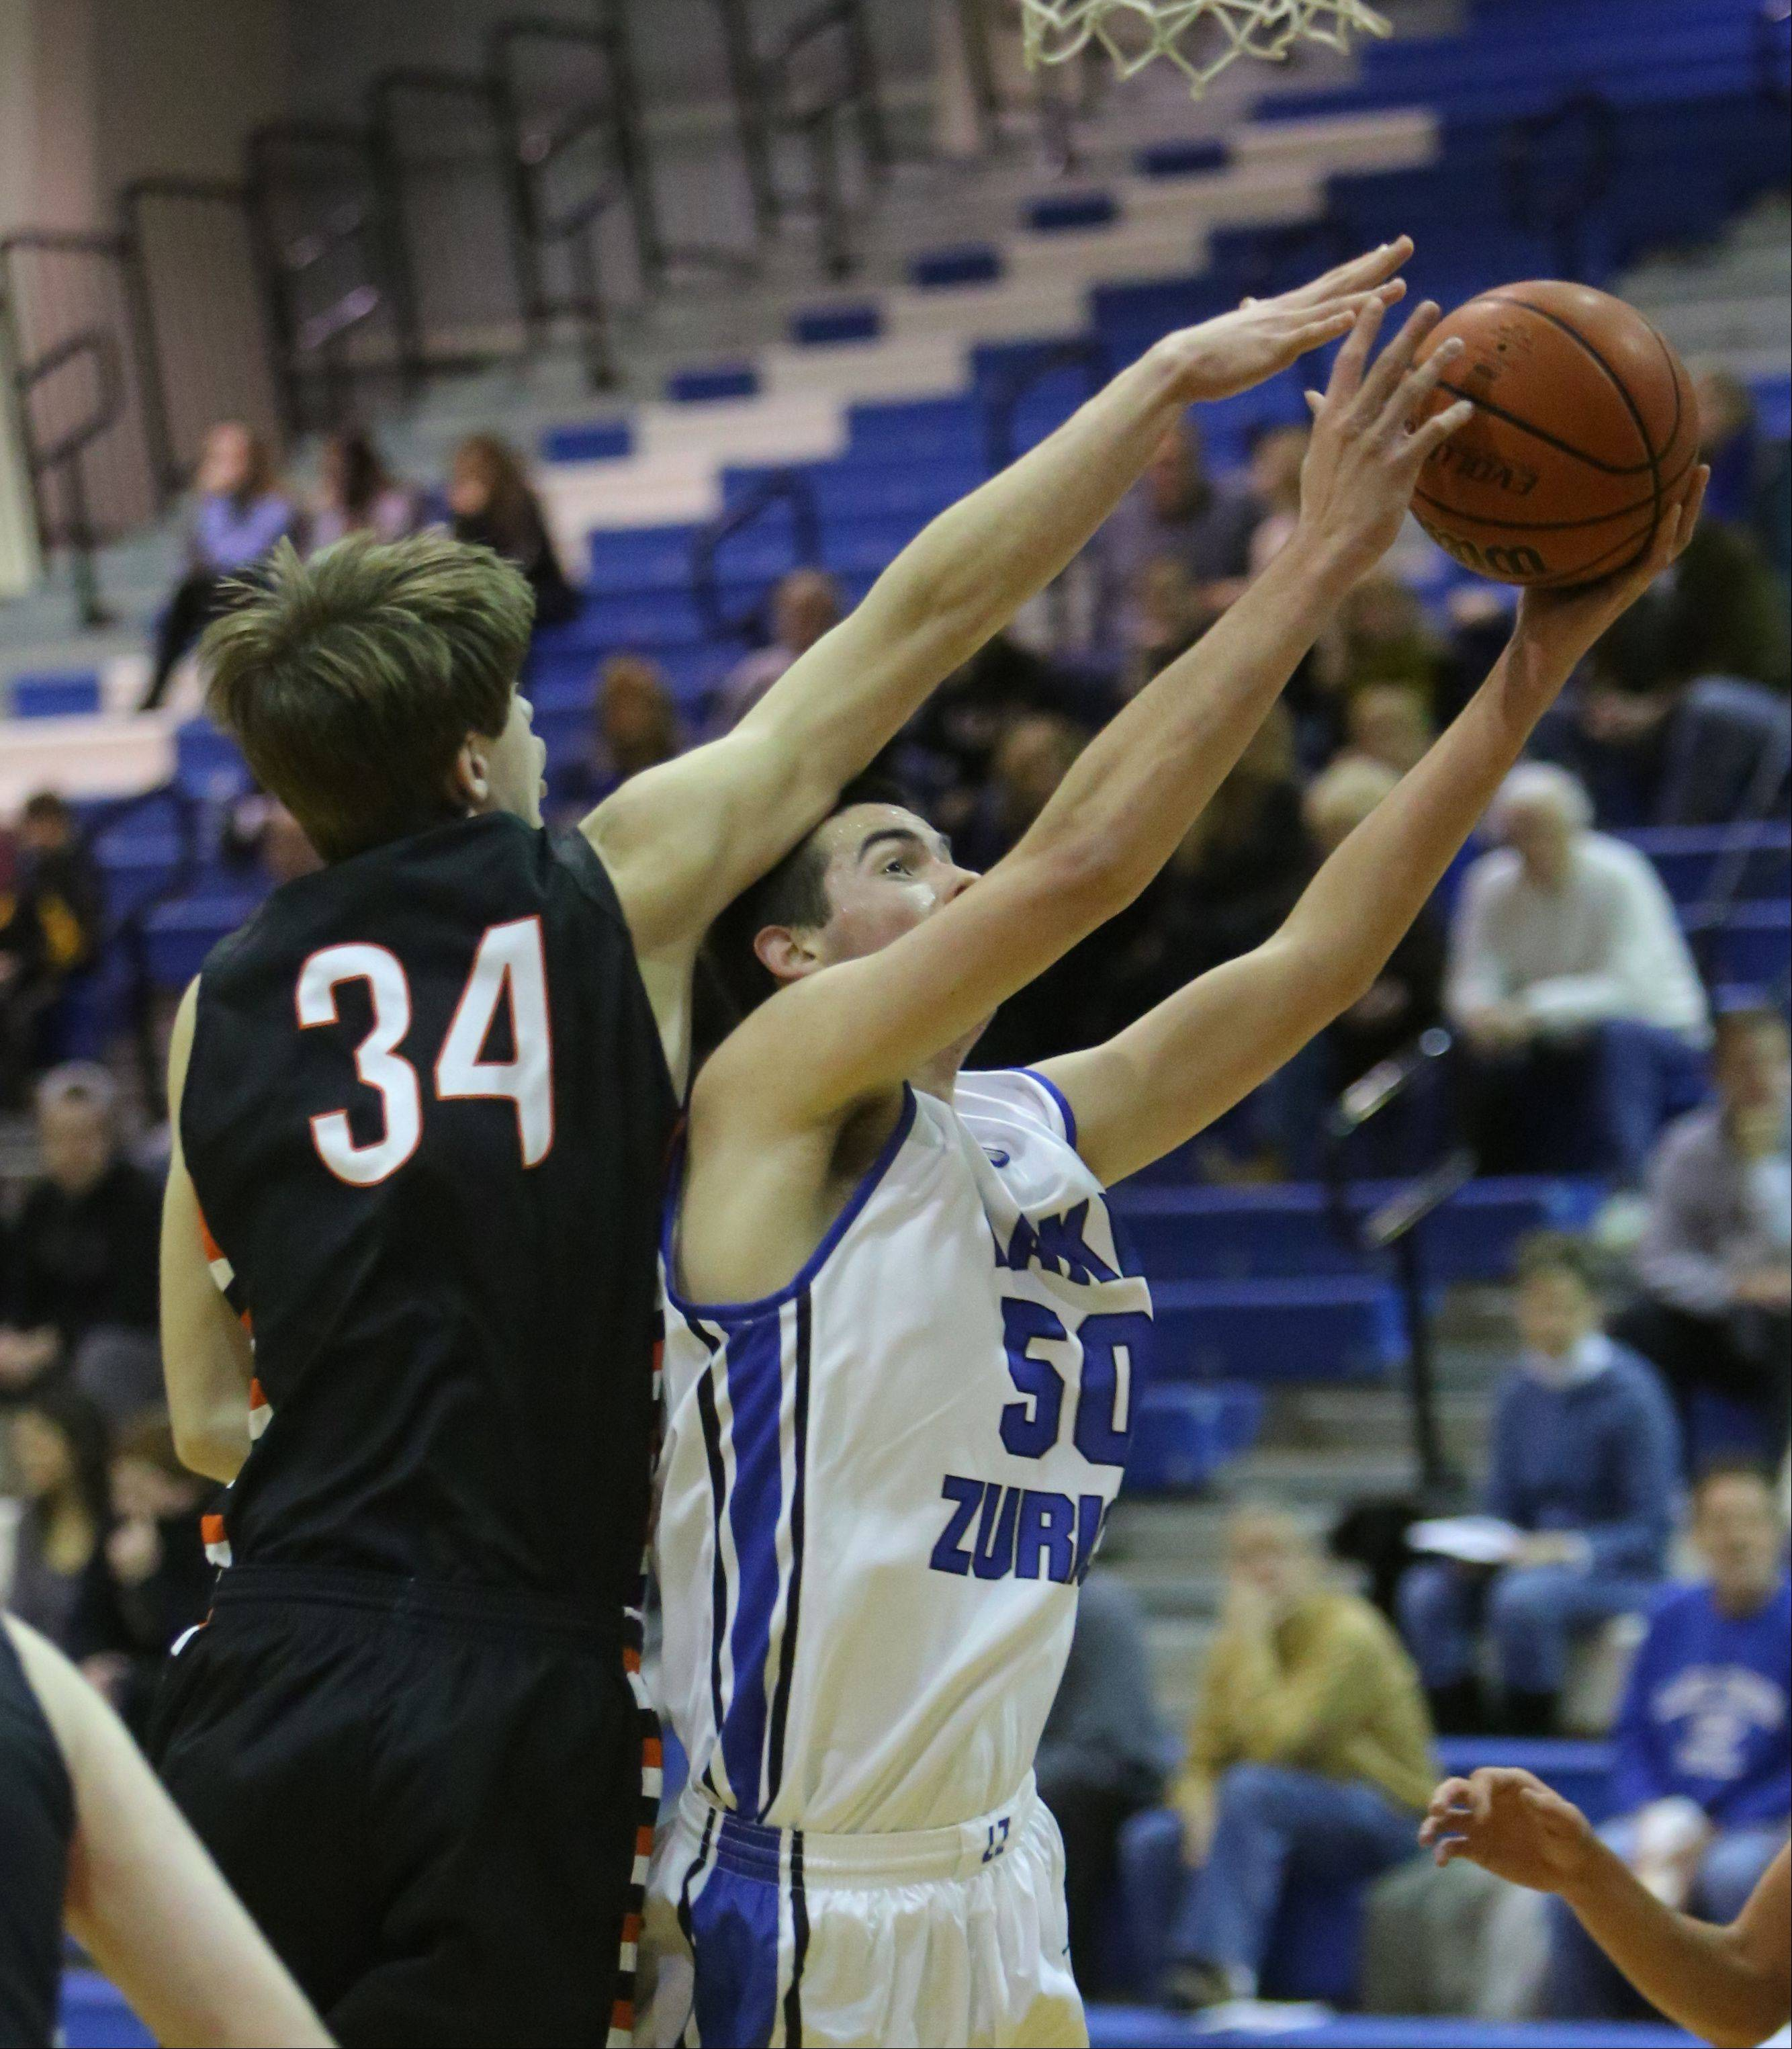 Images from the Lake Zurich vs. Libertyville boys basketball game on Wednesday, Dec. 18.